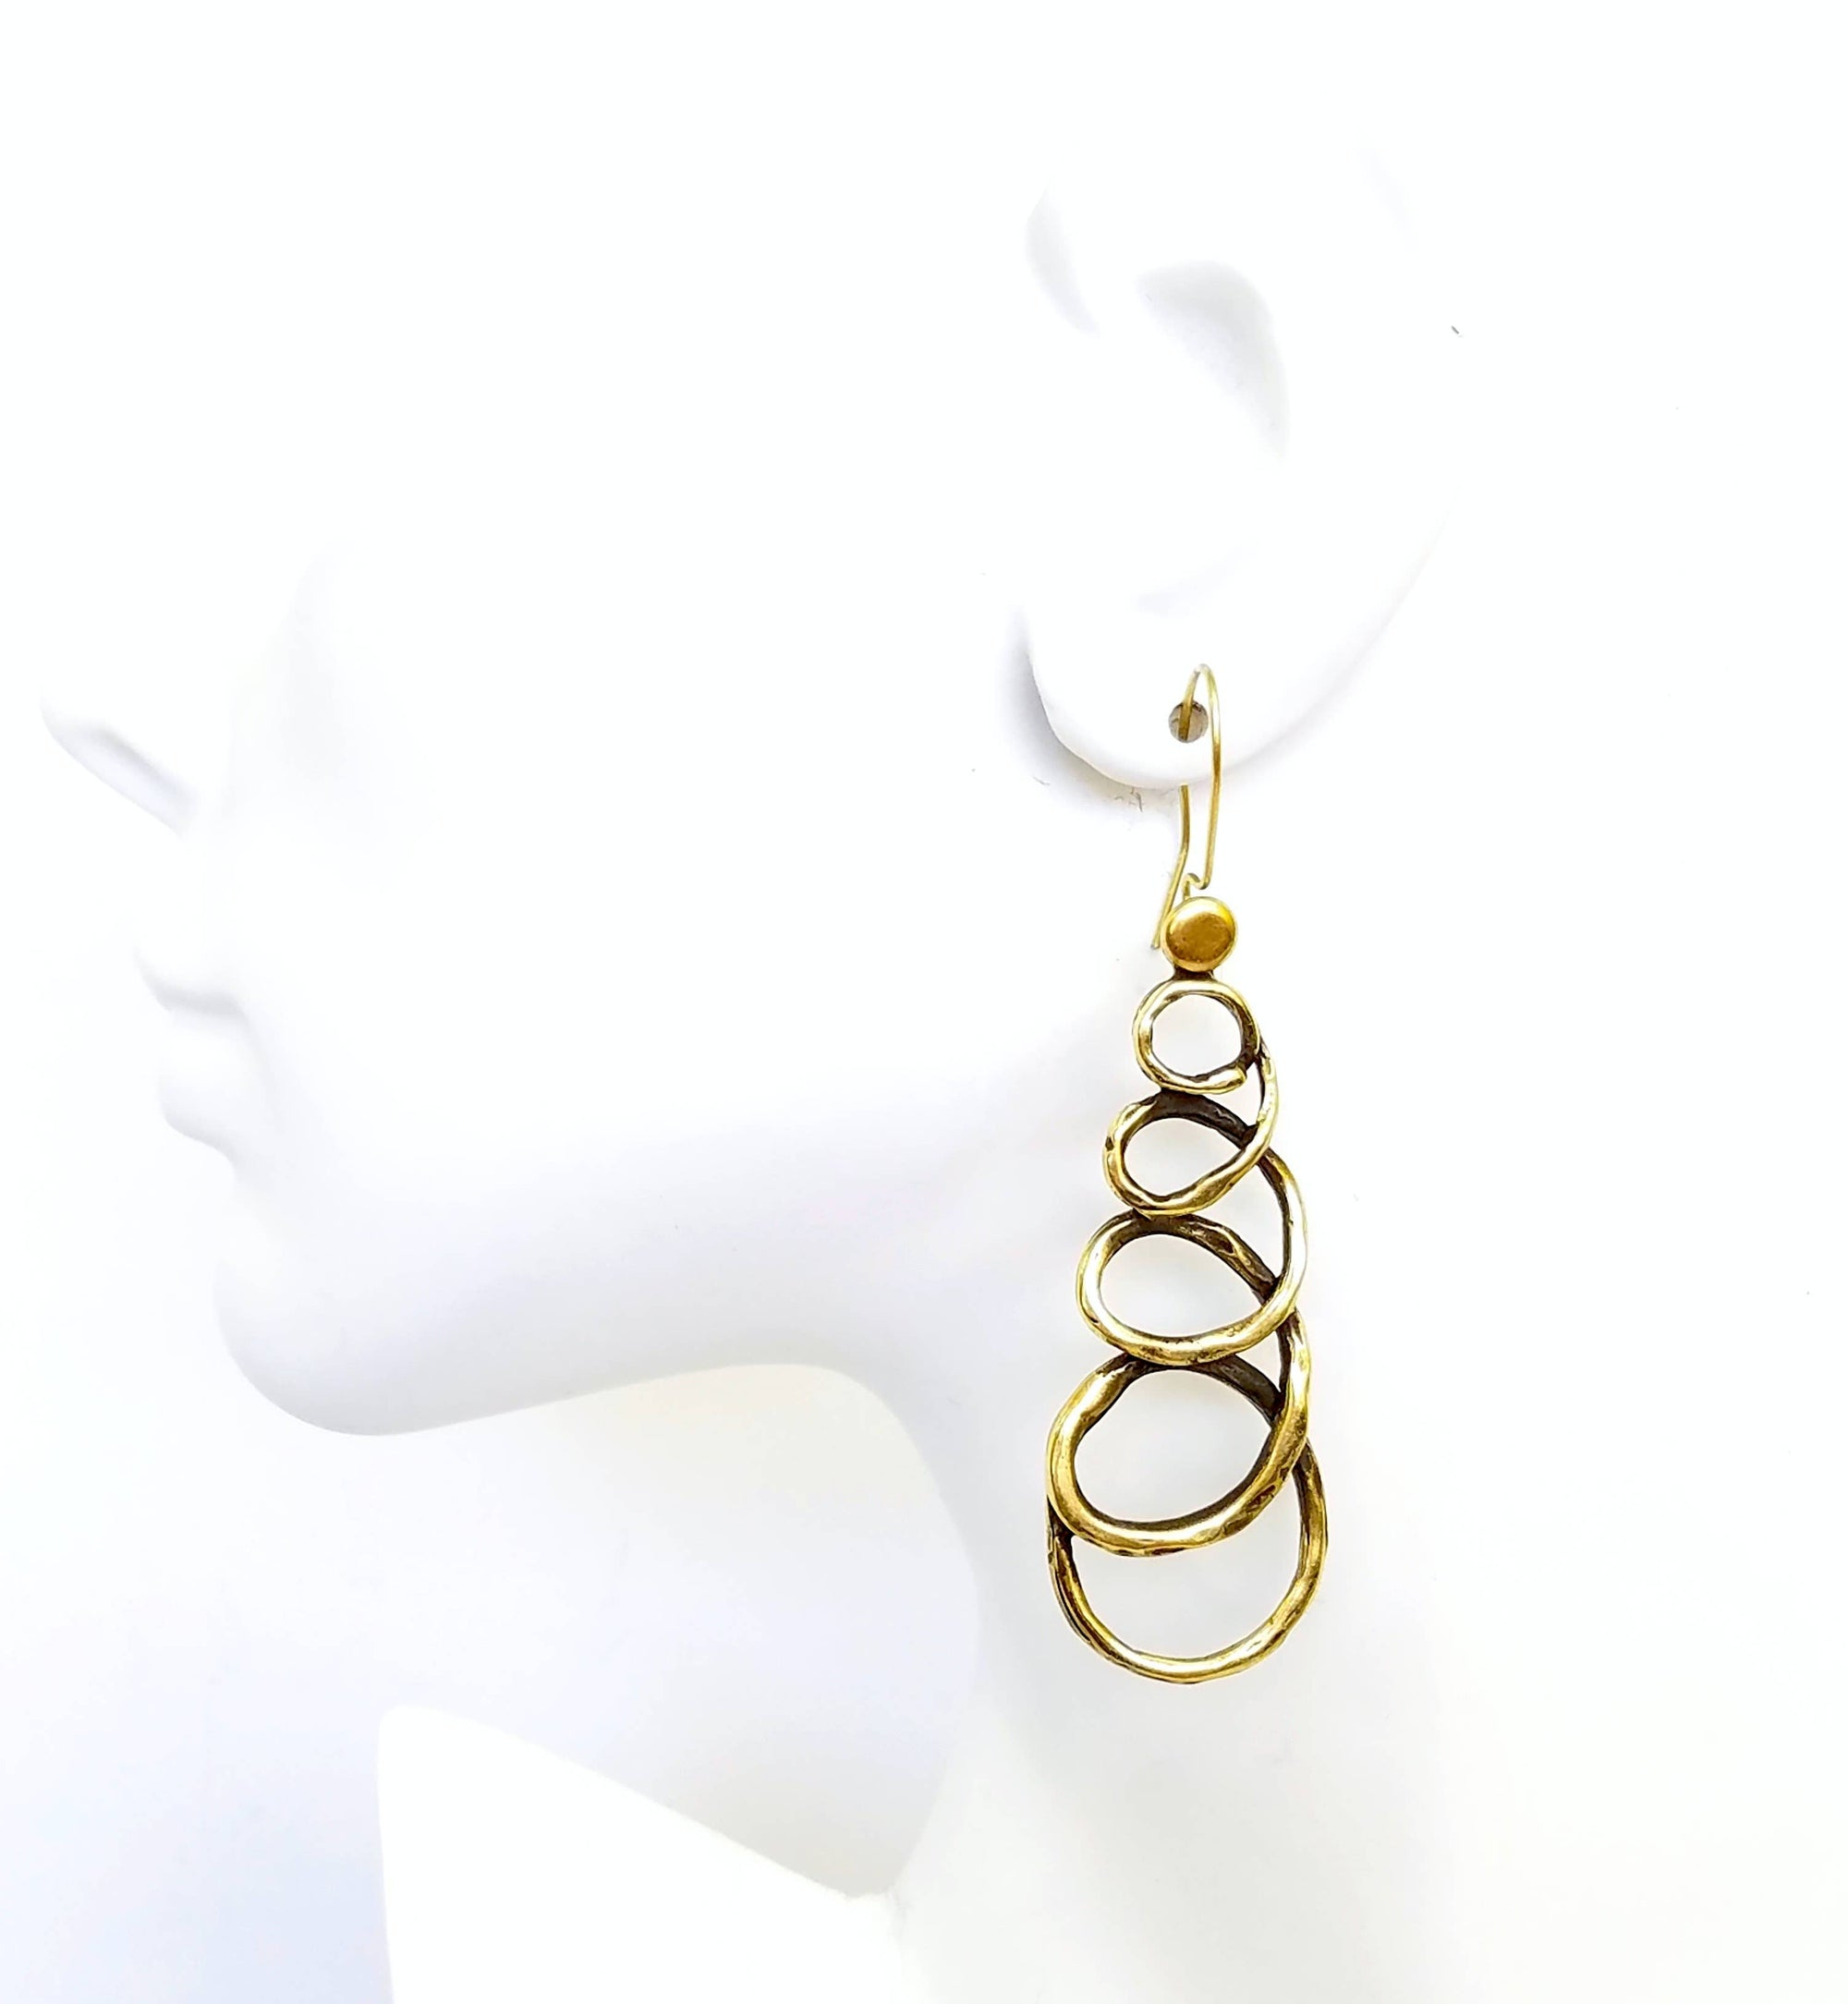 Bronze Loop ala Loop Earrings